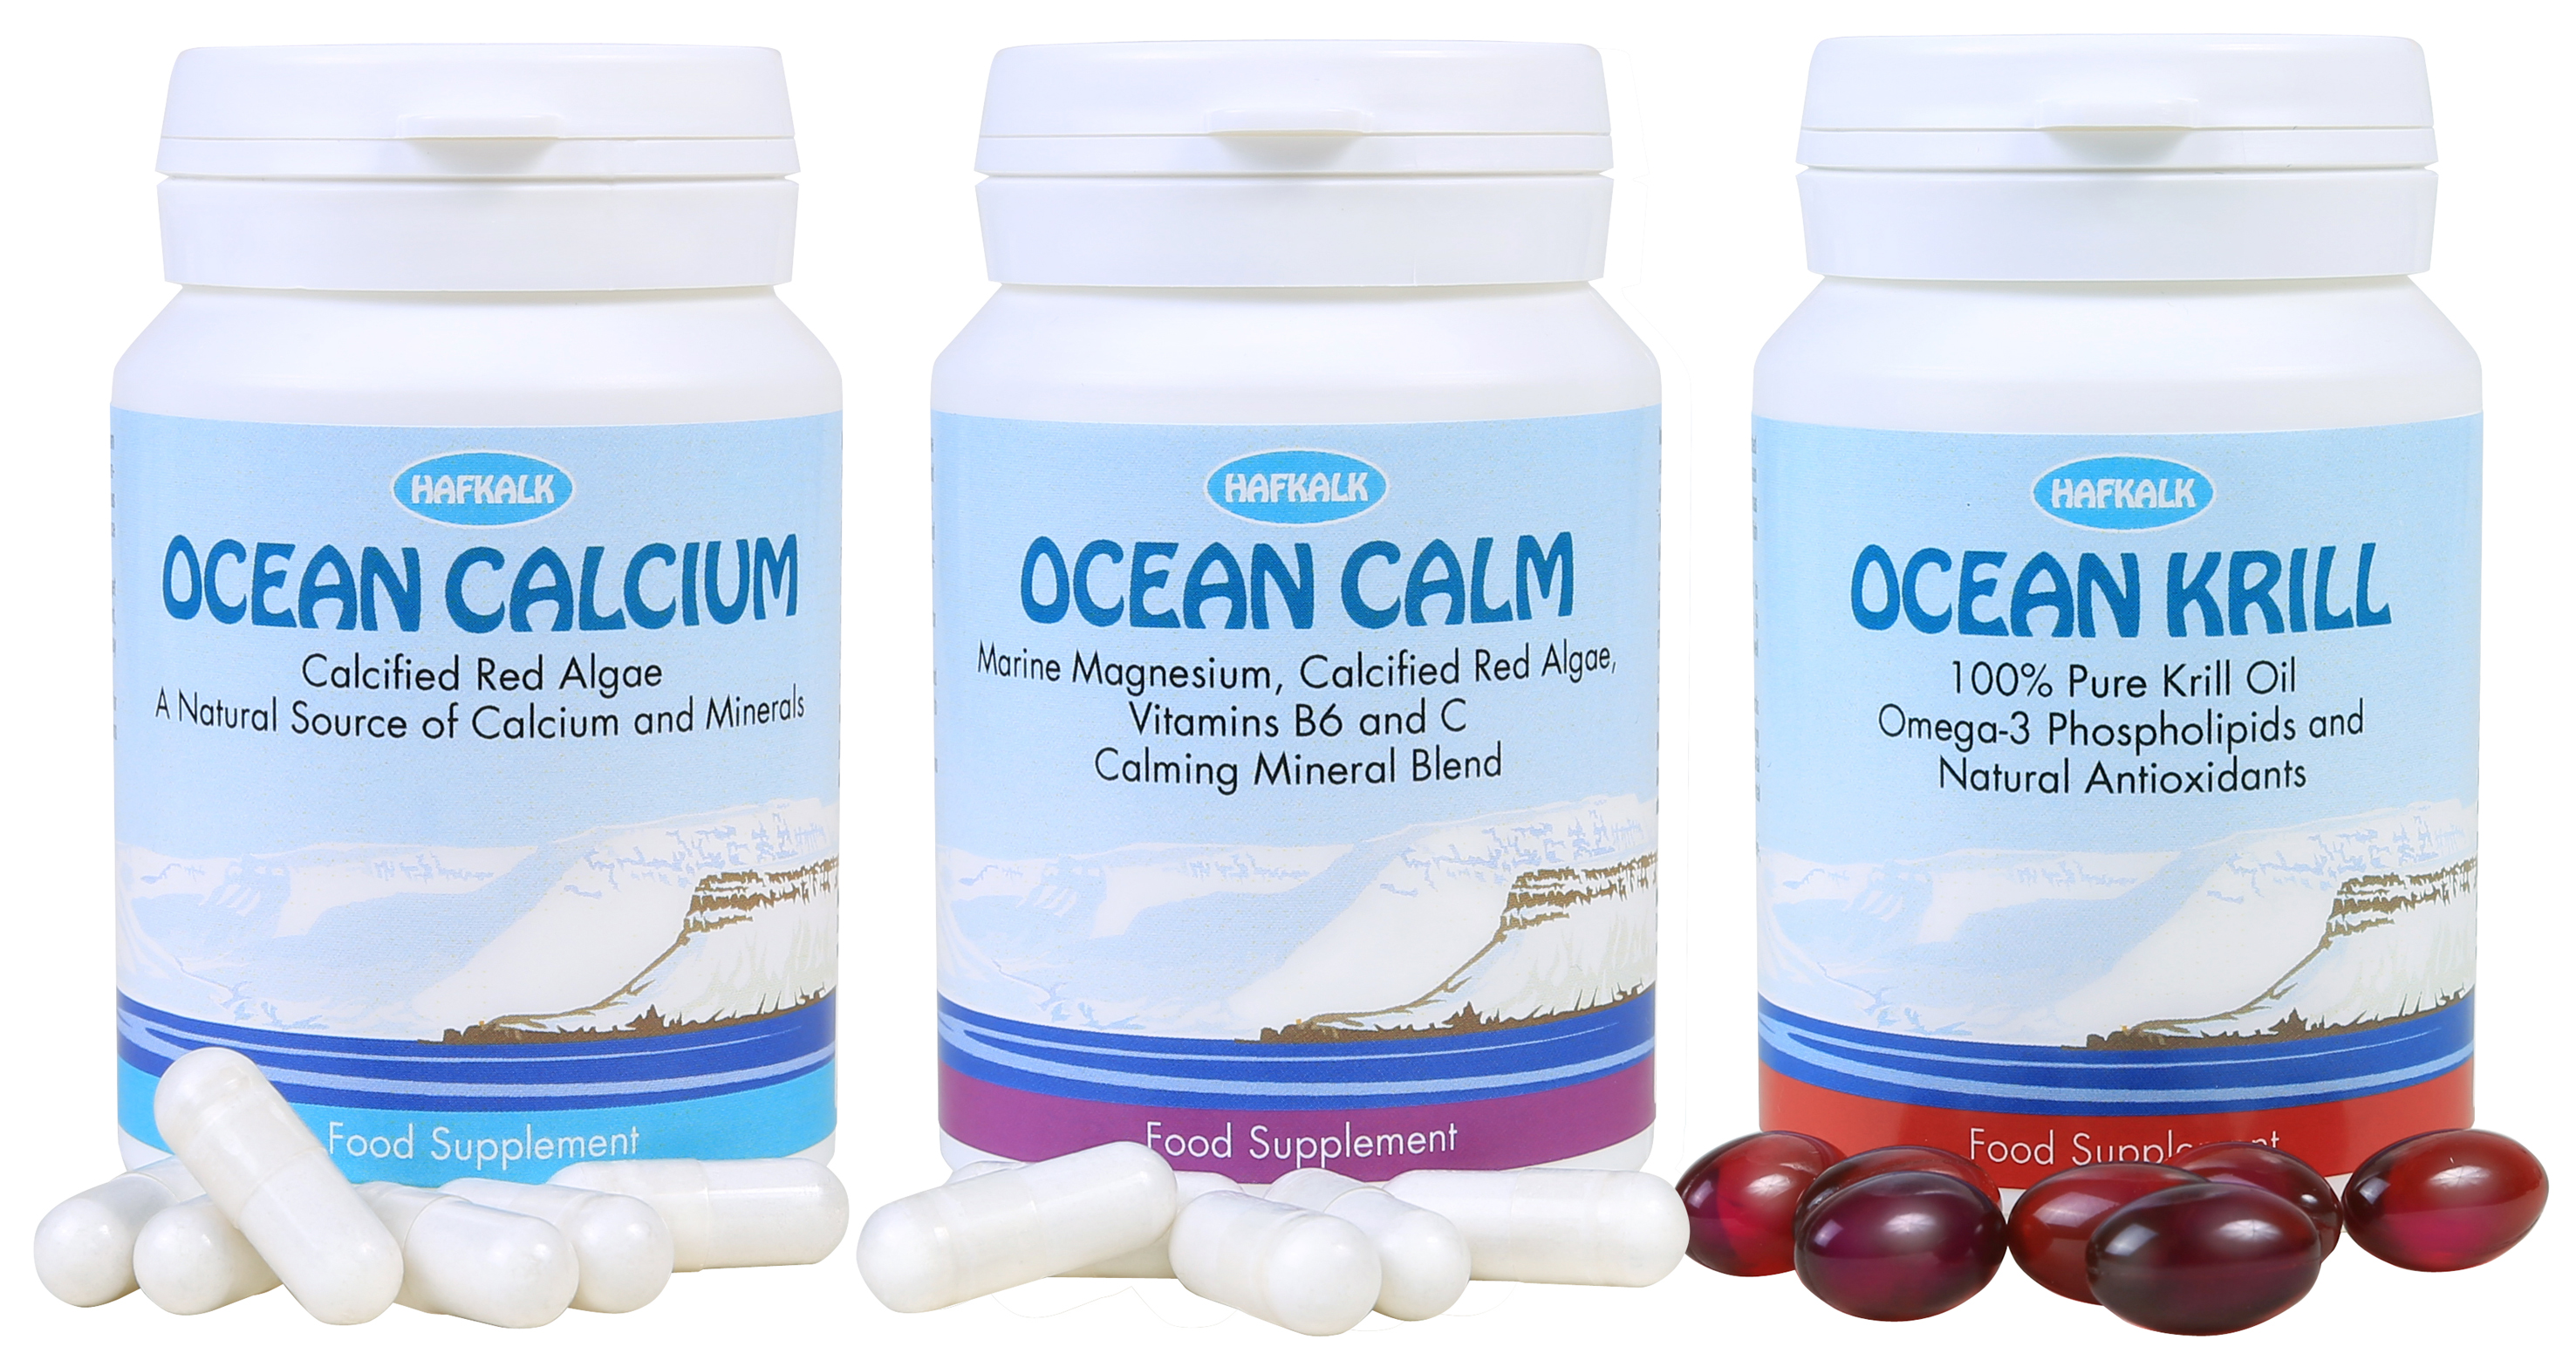 Oceanic silica from red algae benefits